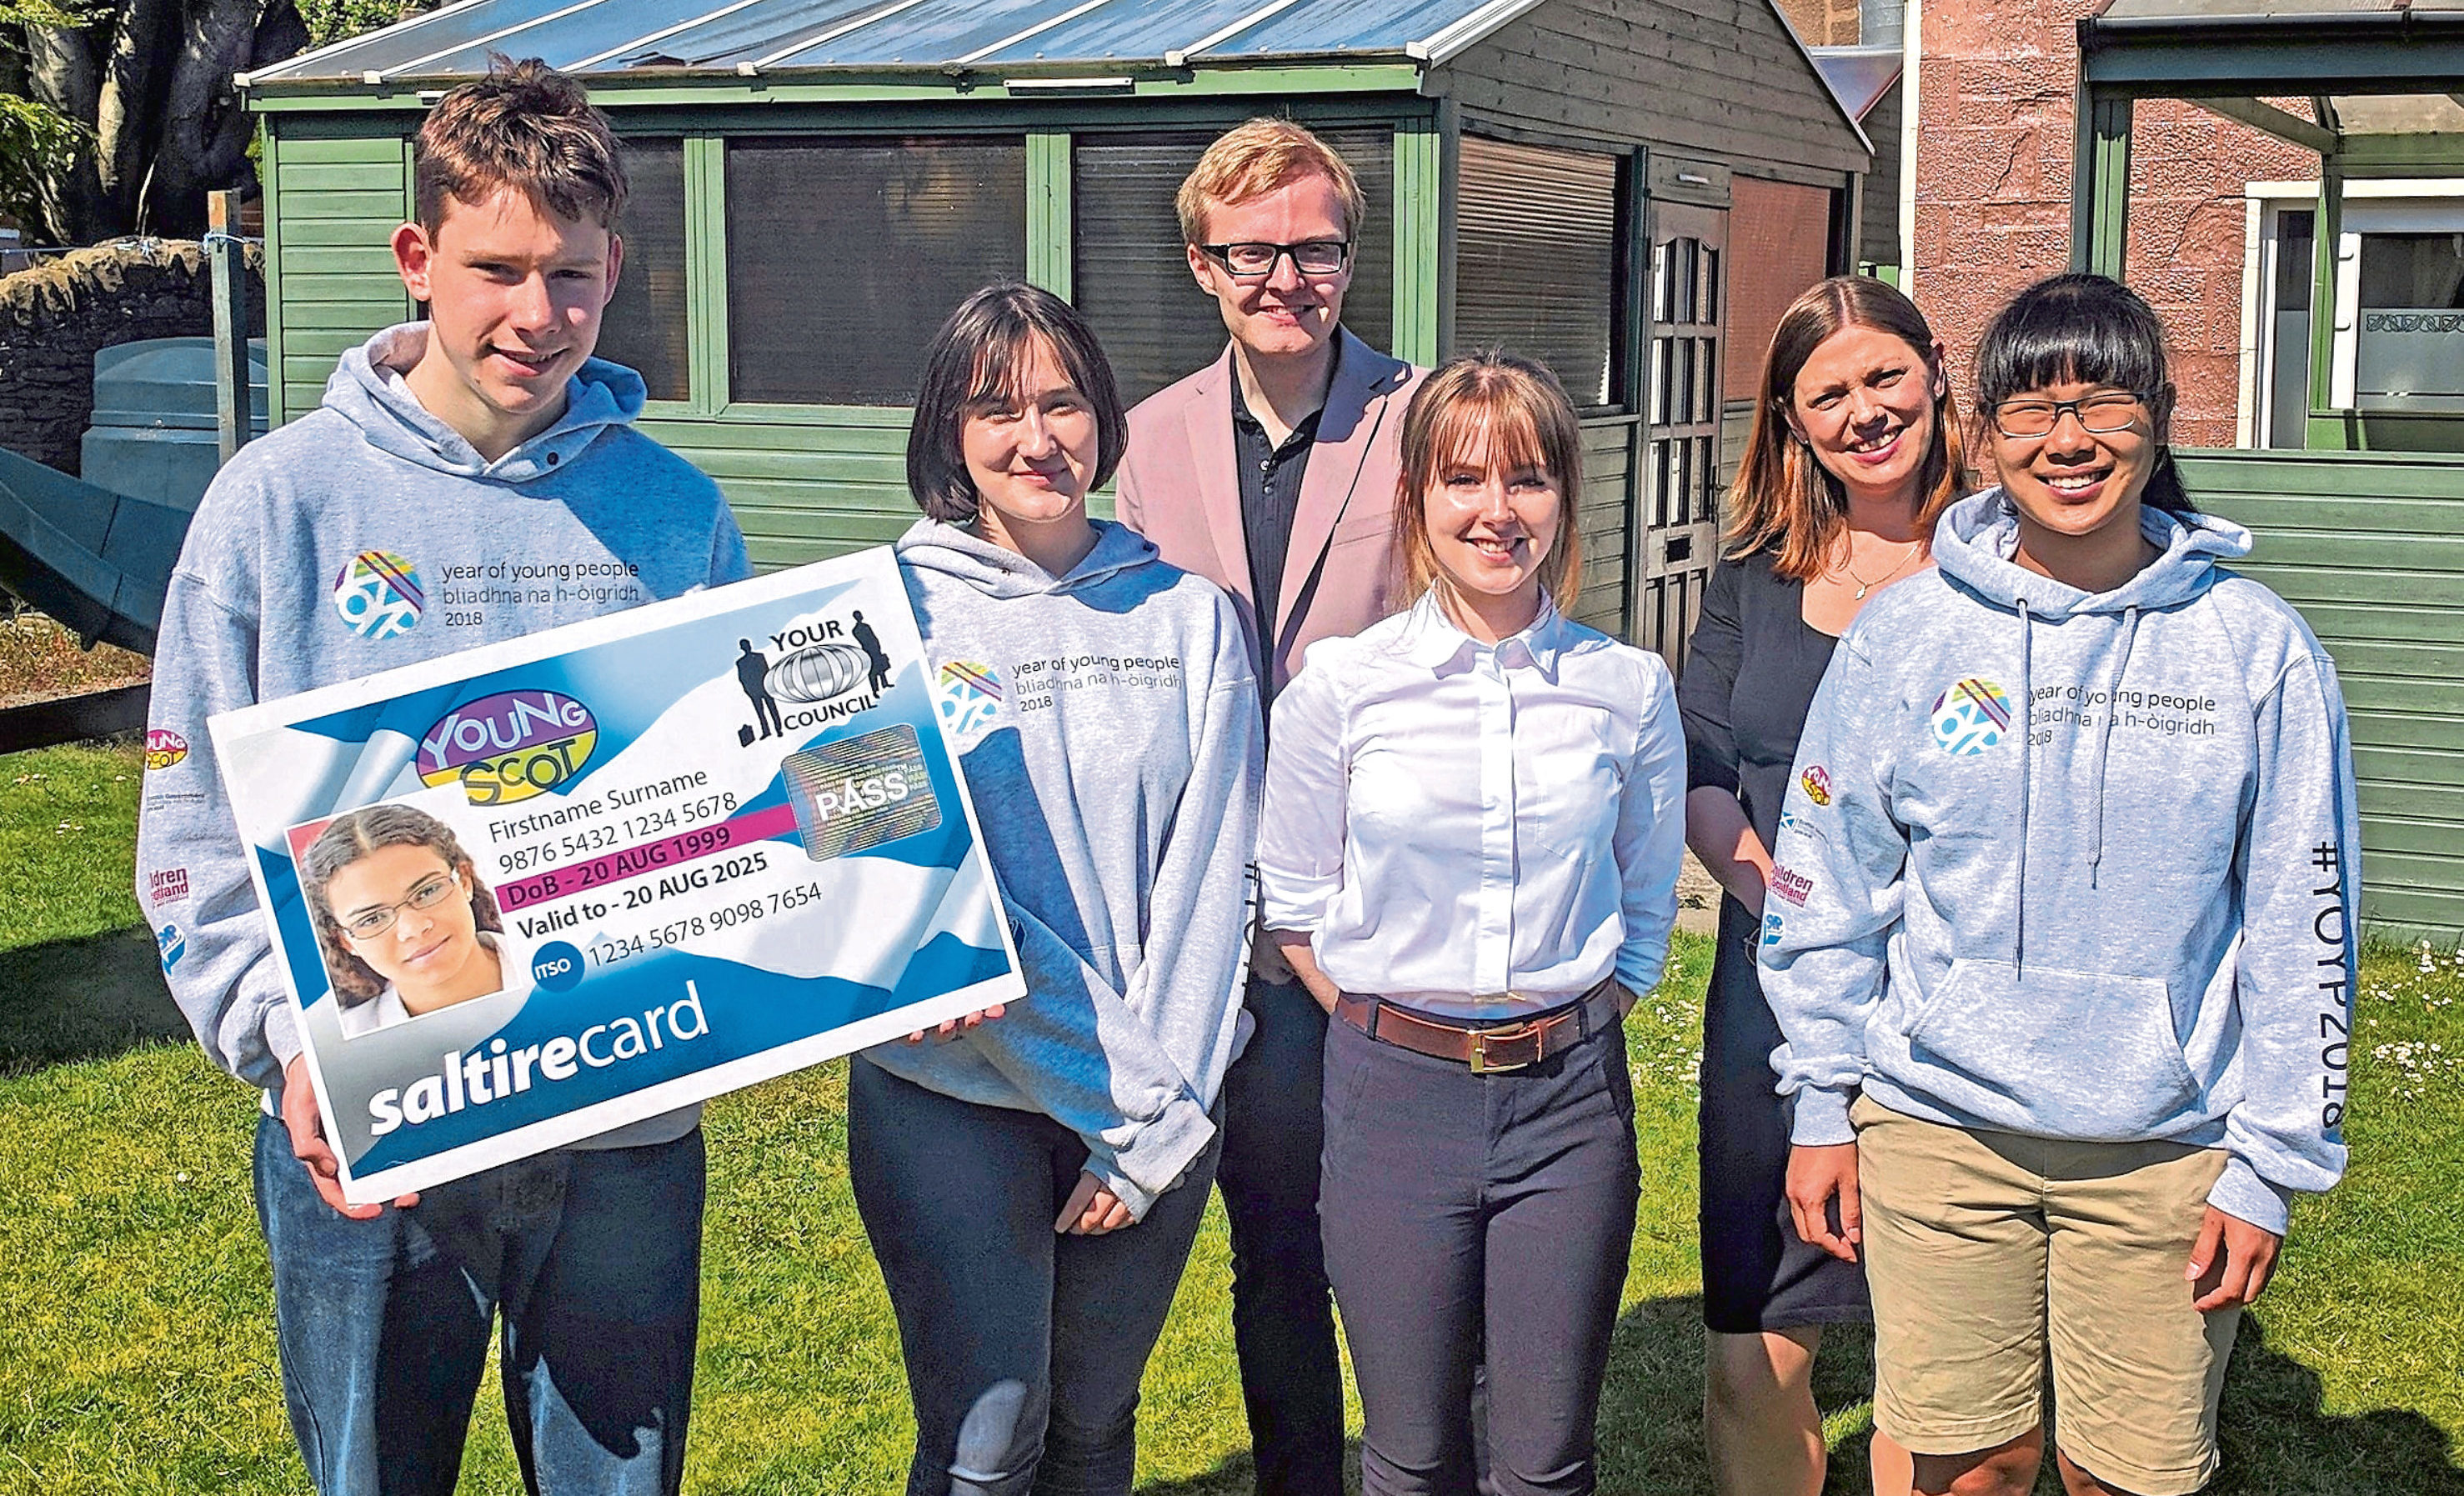 Aberdeenshire Council was promoting the Young Scot card at a meeting in St Cyrus.